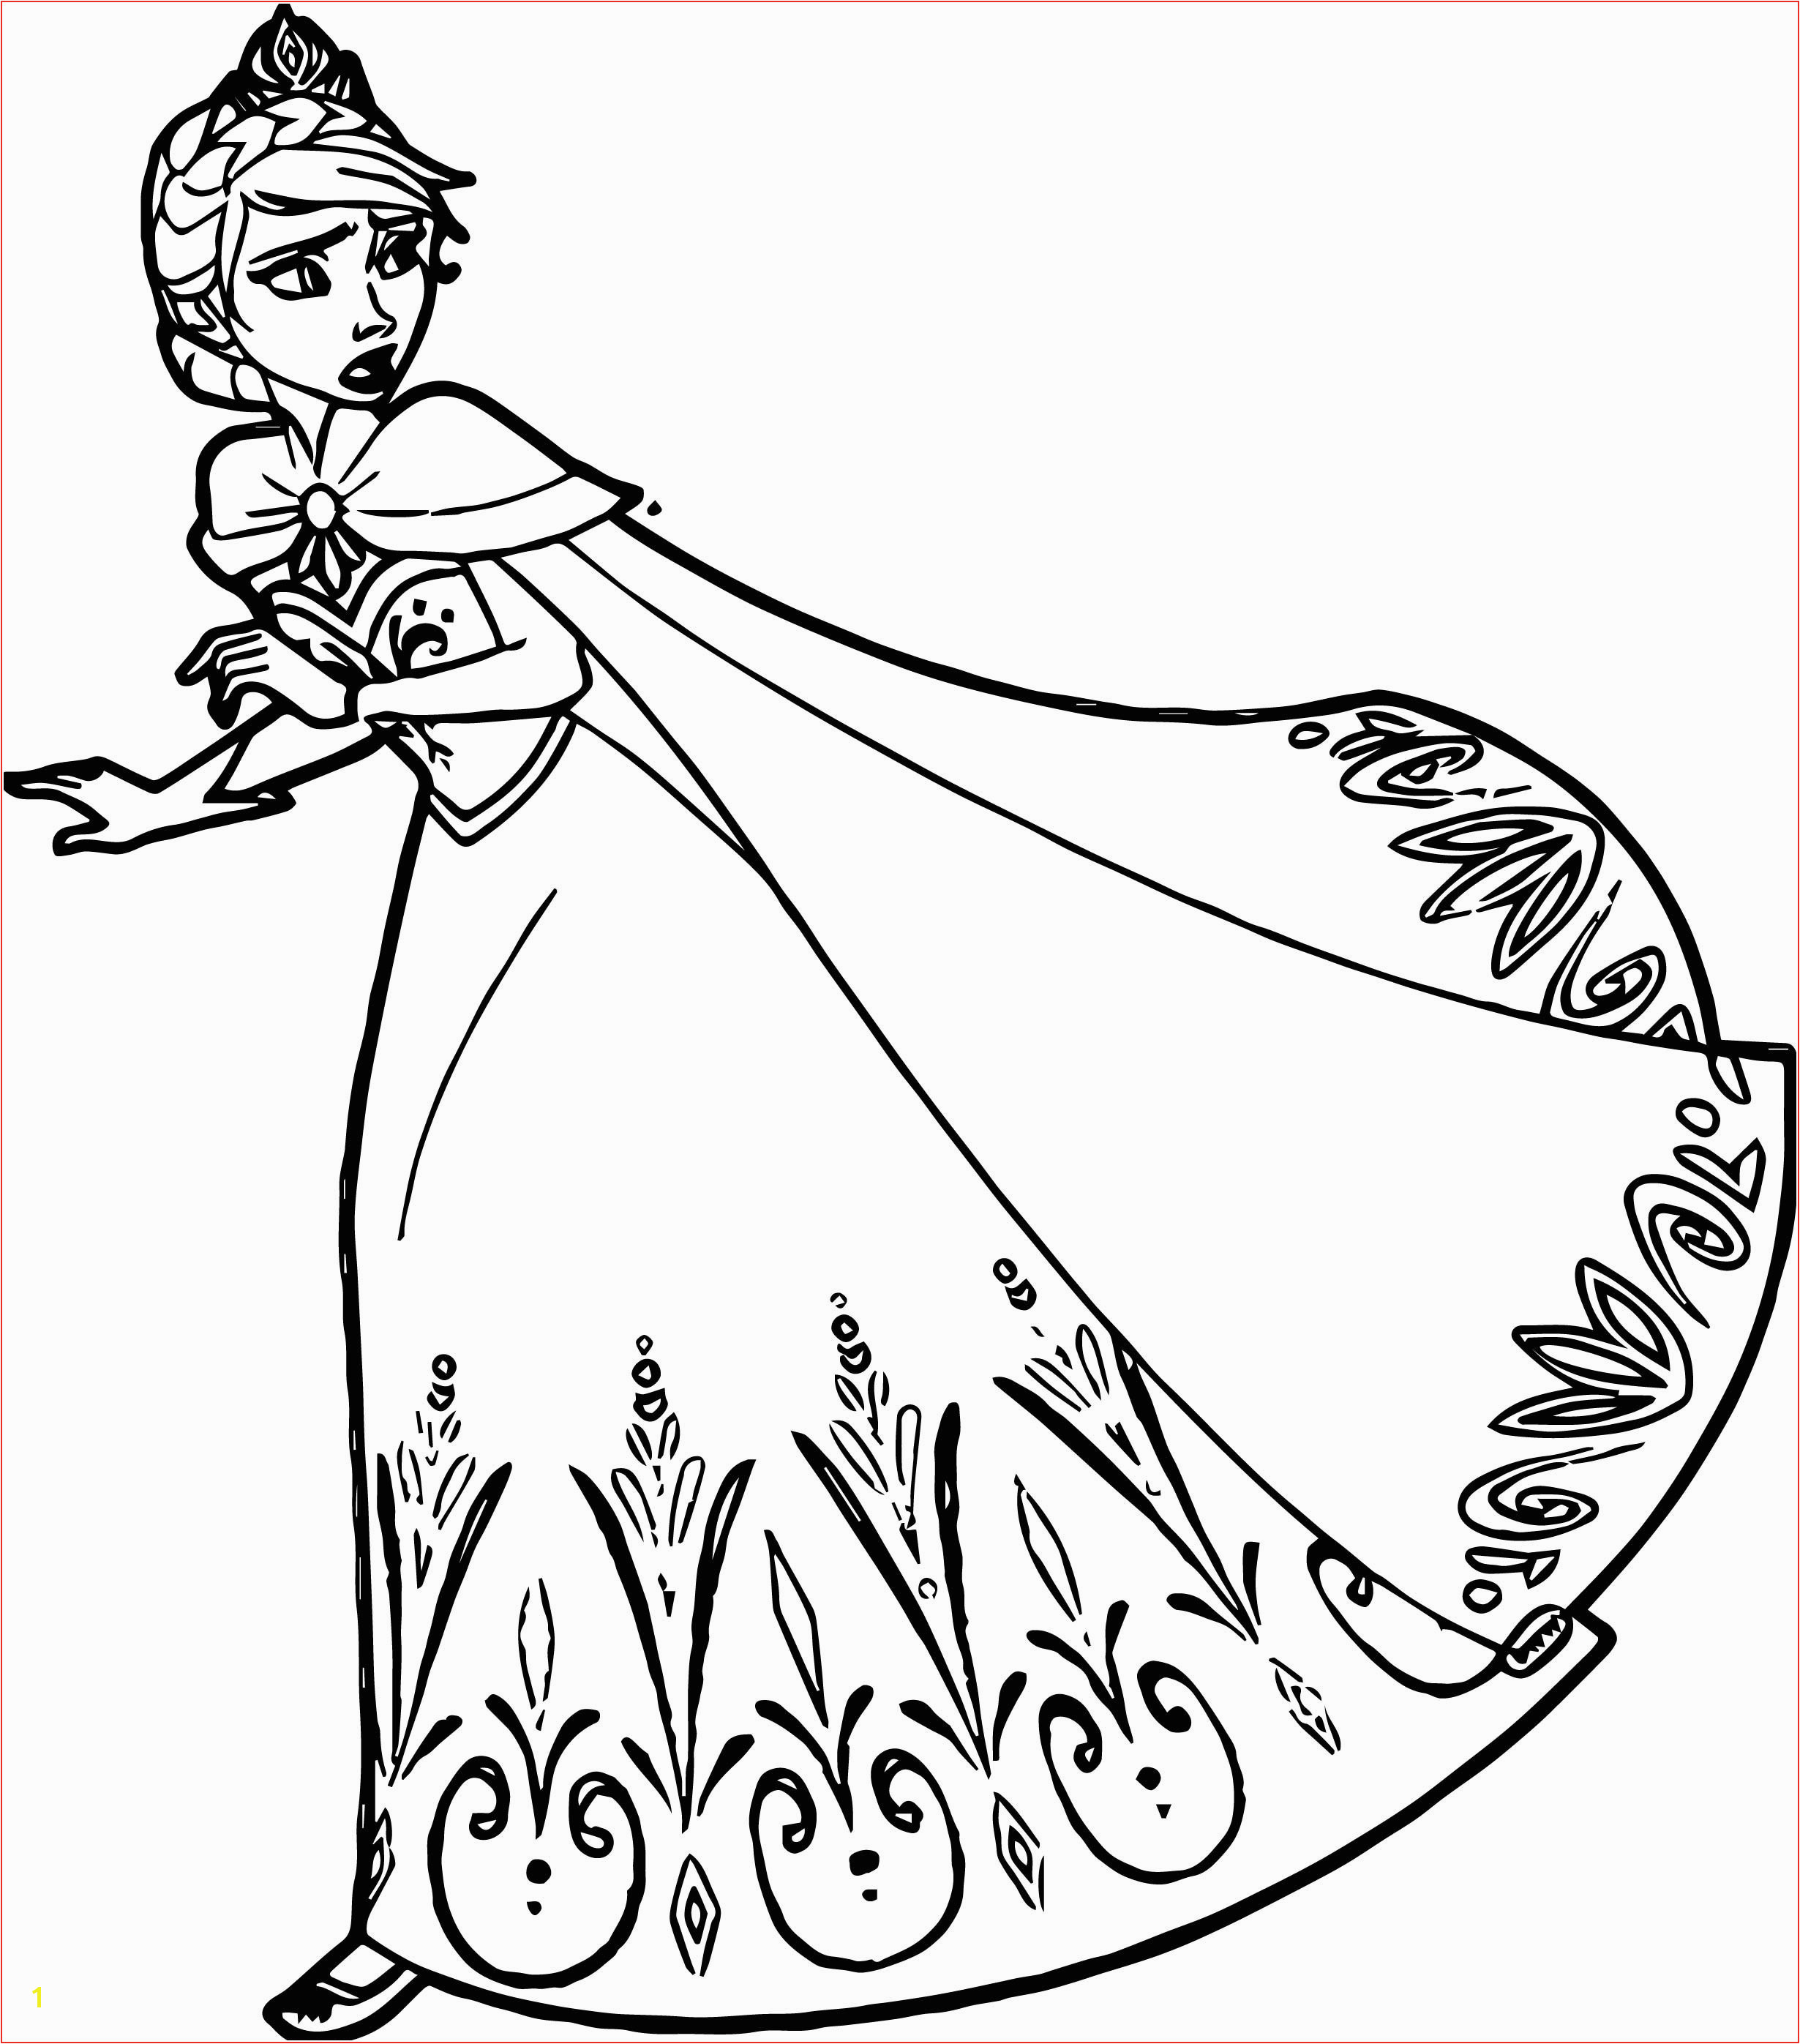 Queen Coloring Pages Best Vases Flower Vase Coloring Page Pages Flowers In A Top I